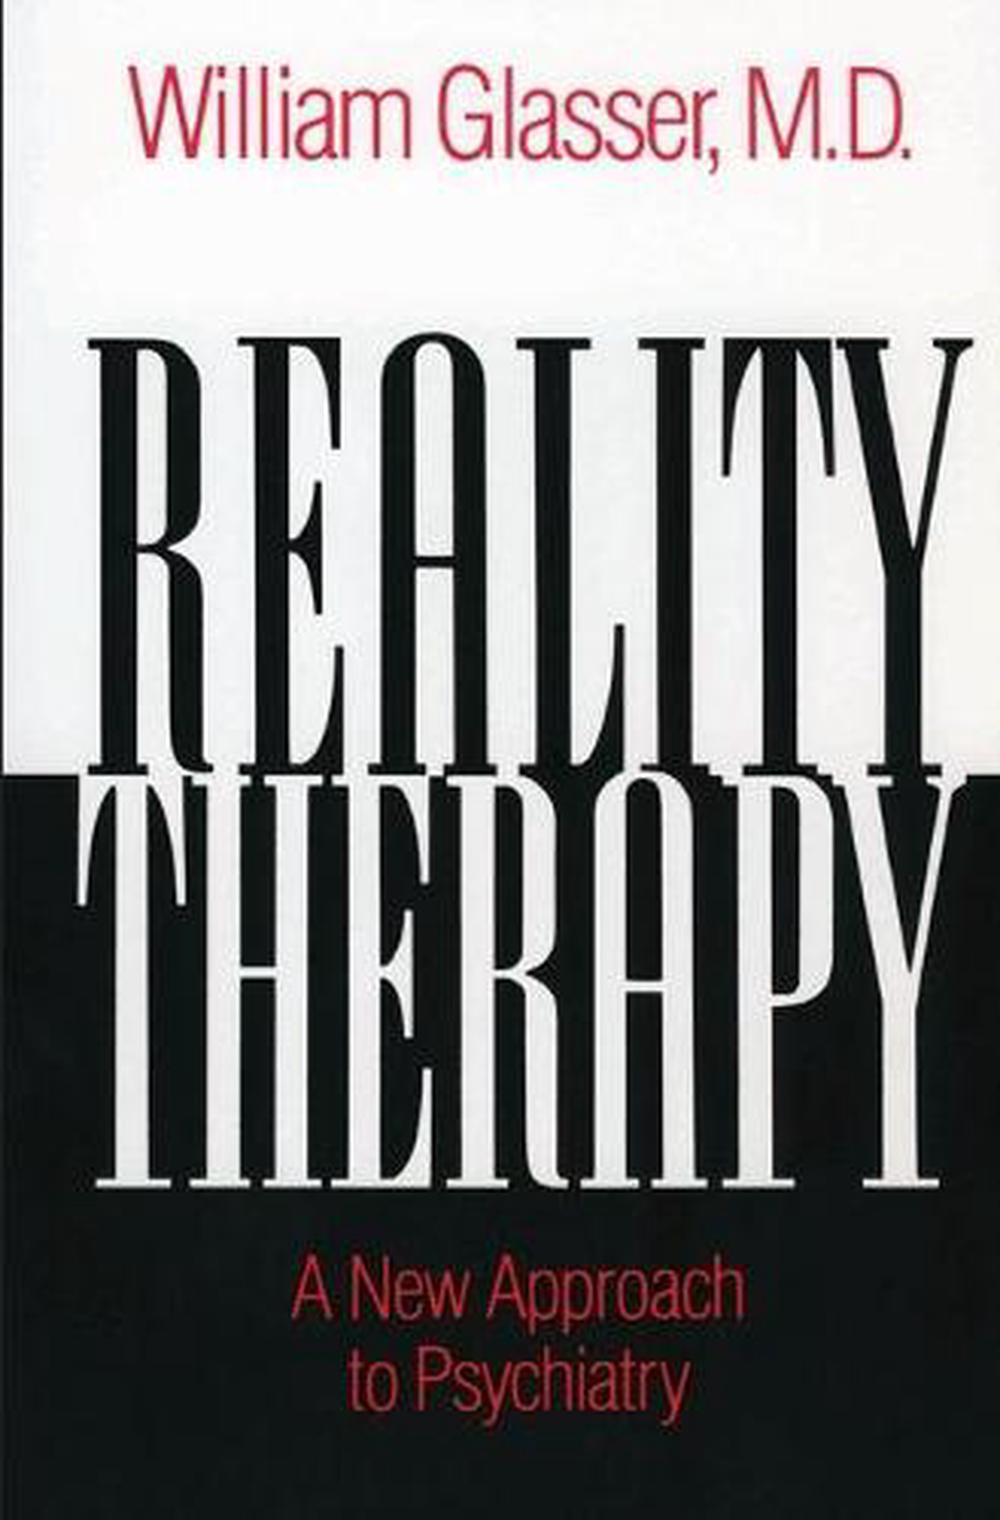 reality therapy: a new approach to psychiatry essay Get this from a library reality therapy : a new approach to psychiatry [william glasser] -- explains the philosophy and procedures of the newer therapeutic method that emphasizes the individual's acceptance of reality and of responsibility for his or her behavior.